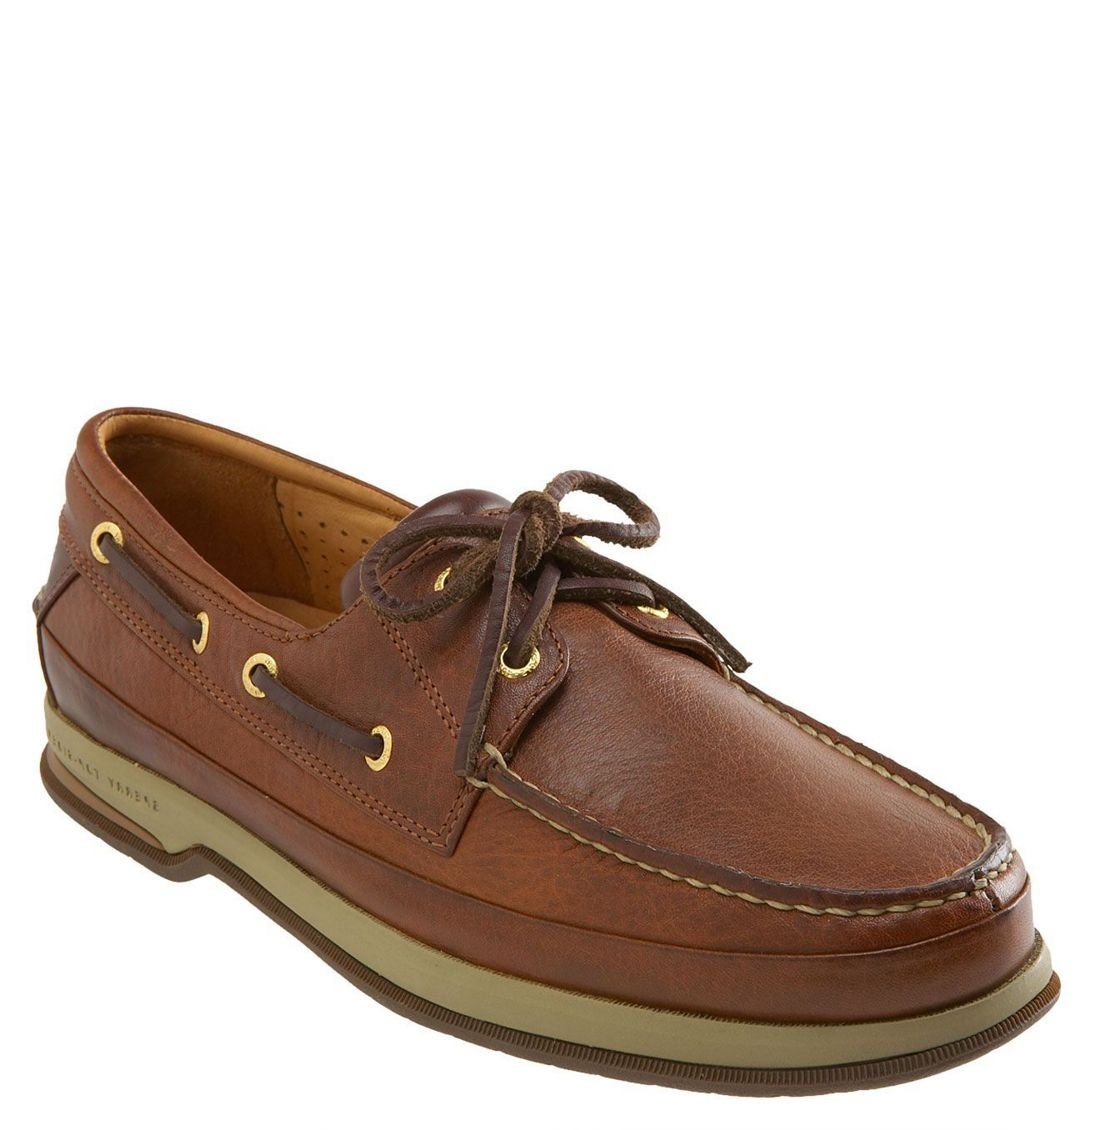 Sperry Top Sider Gold Cup 2 Eye Boat Shoe In Brown For Men